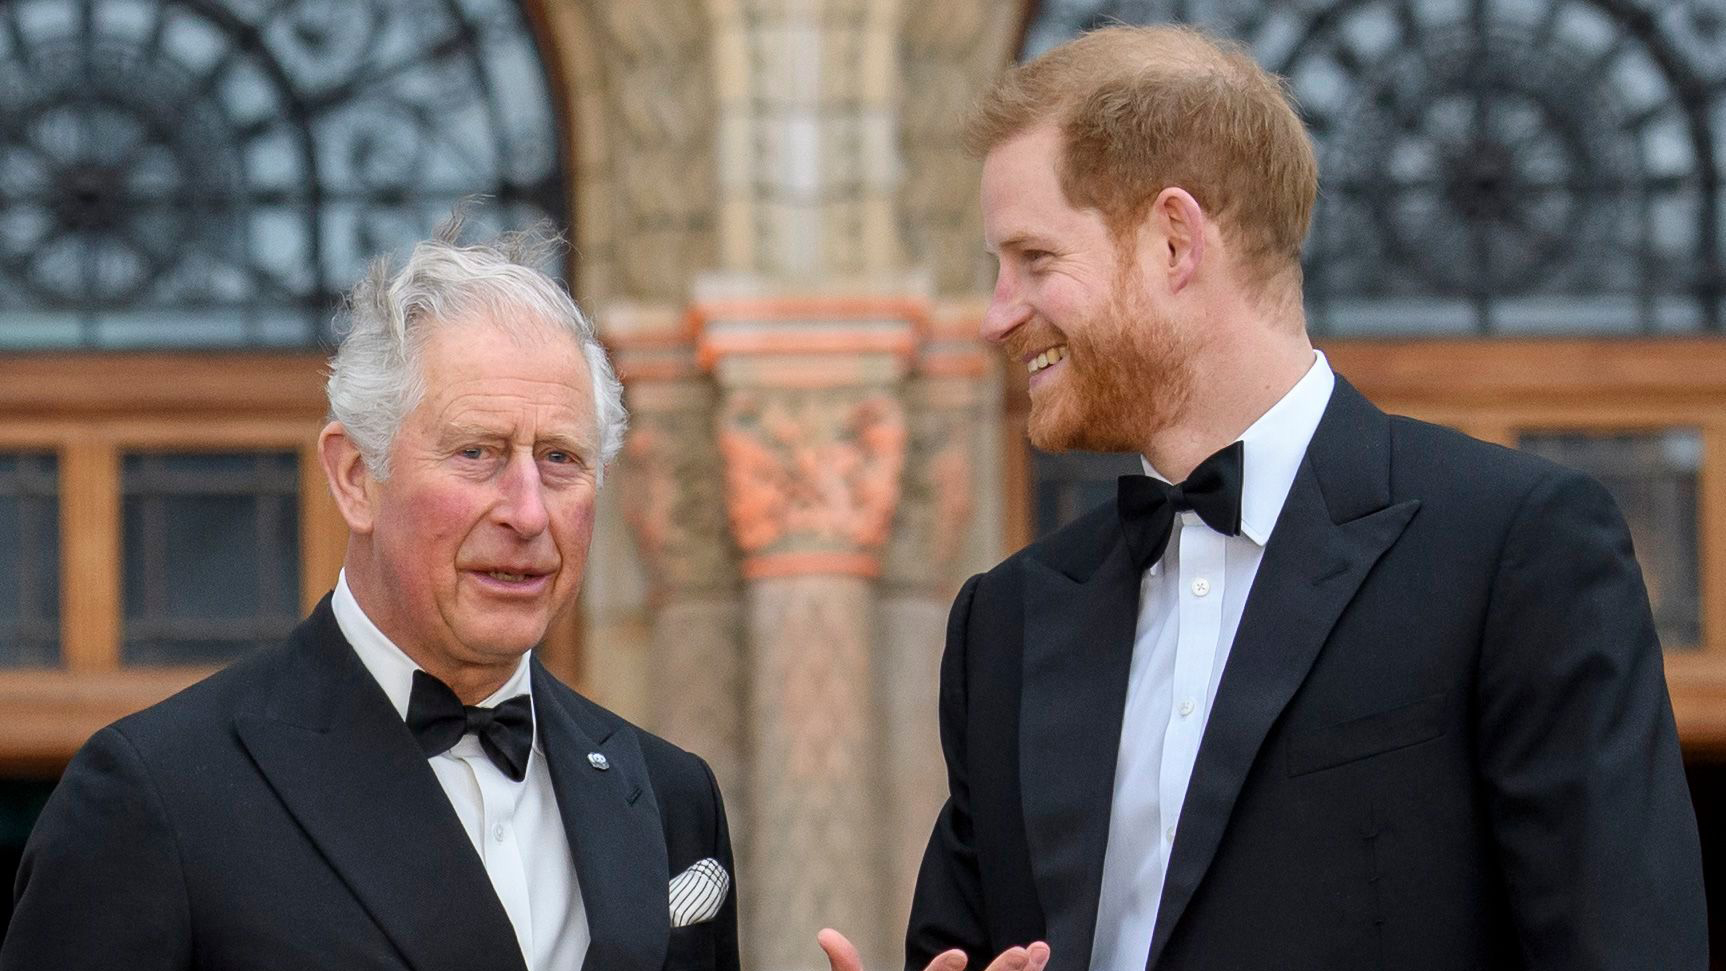 prince harry s look alike is young prince charles photo sheknows https www sheknows com entertainment articles 2077815 prince harry look alike young prince charles photo